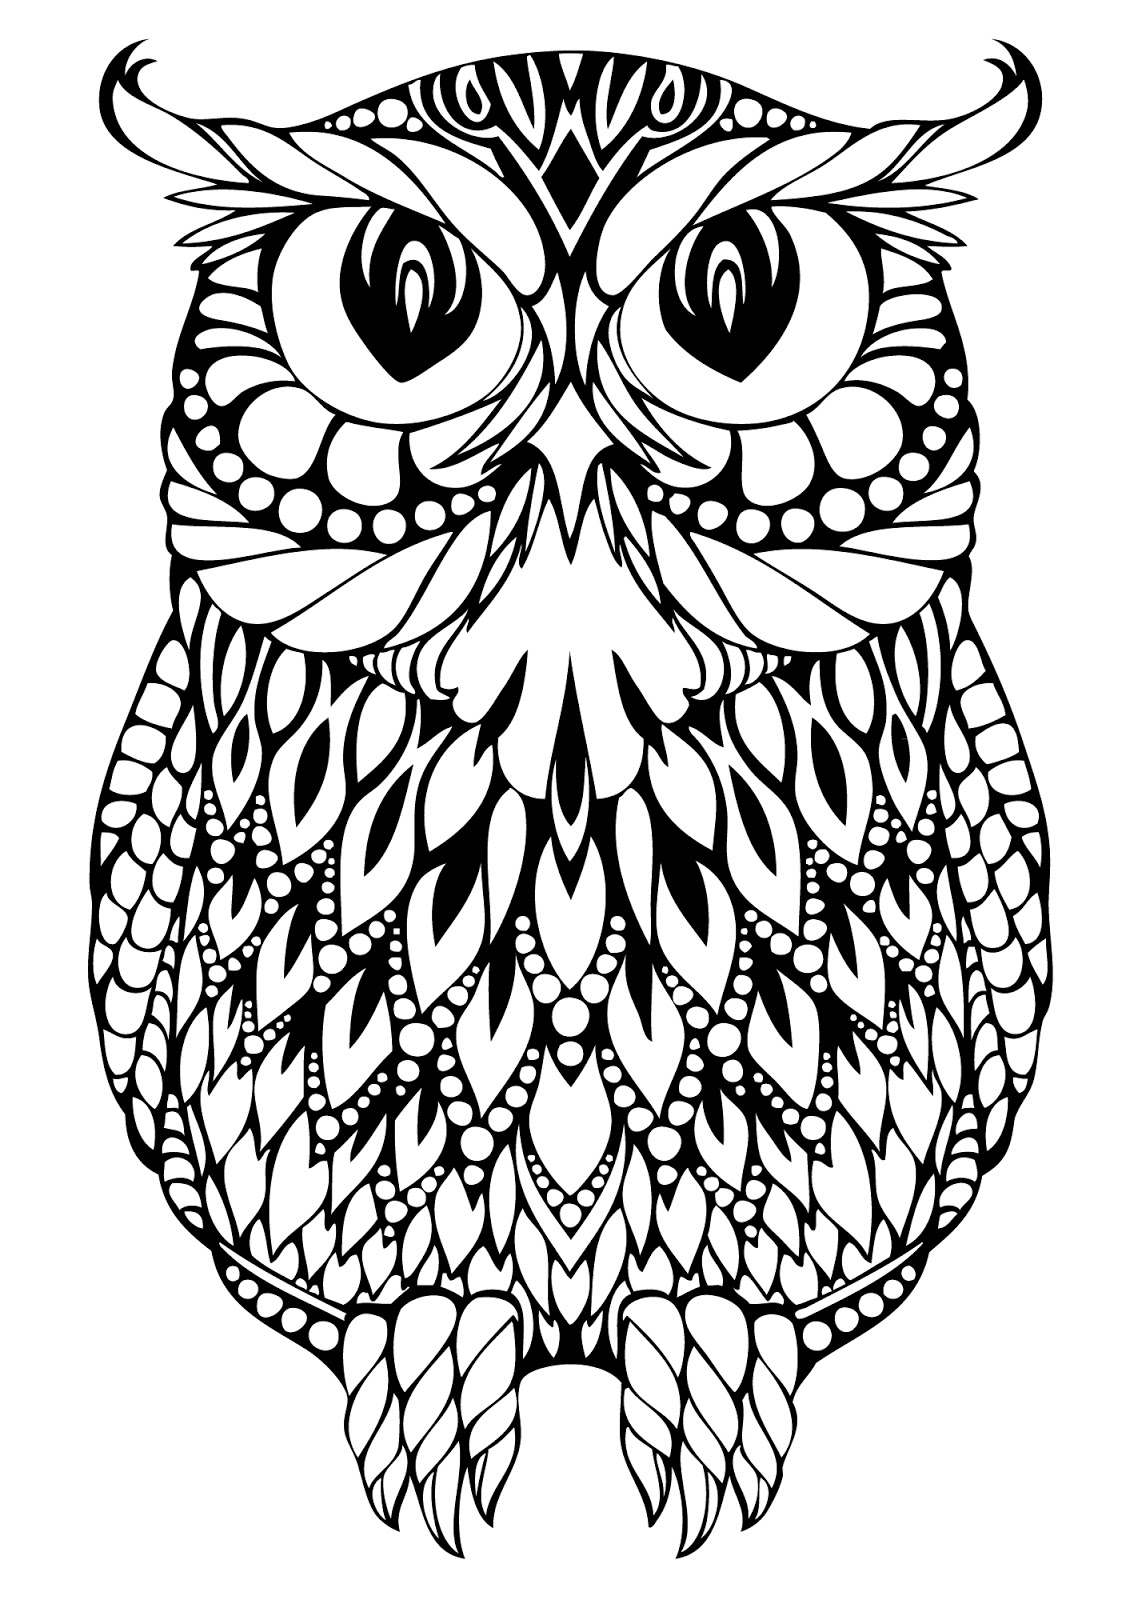 coloring pages owls top 10 cute owl hard coloring pages image free coloring owls coloring pages